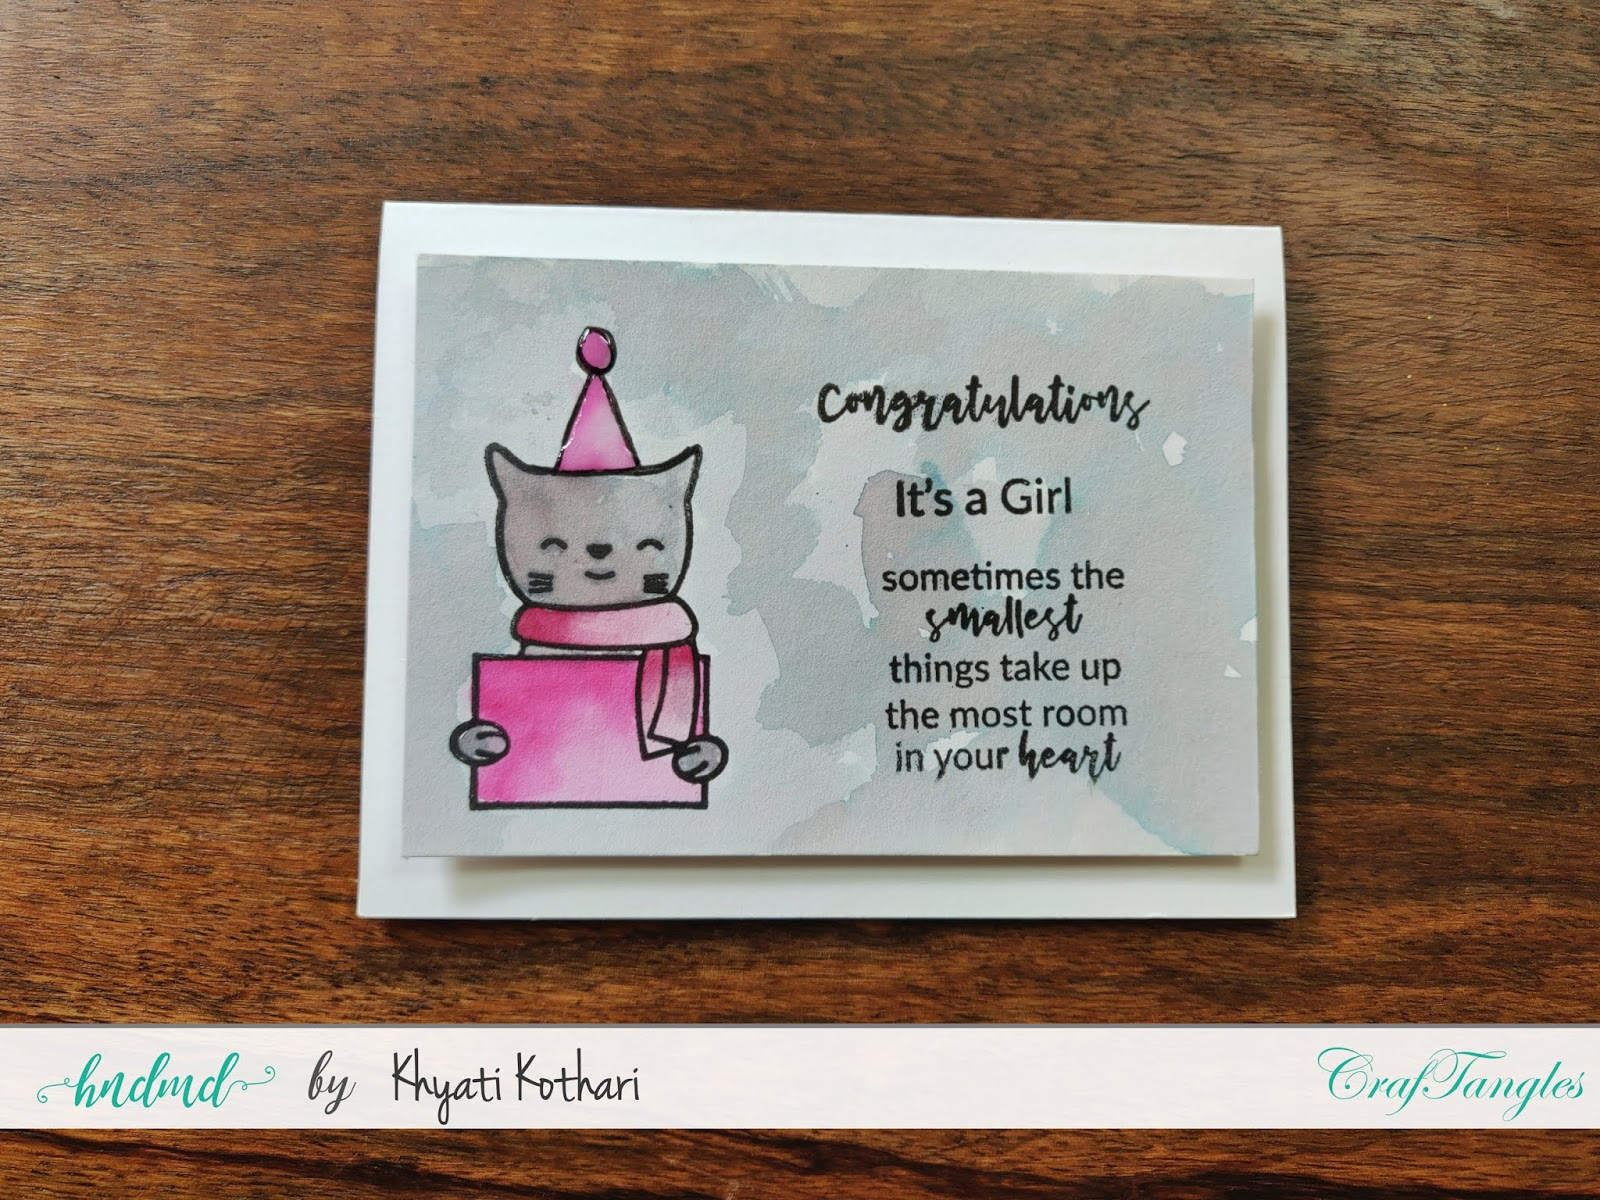 How to Stretch your stamps - Cardmaking video tutorial 16